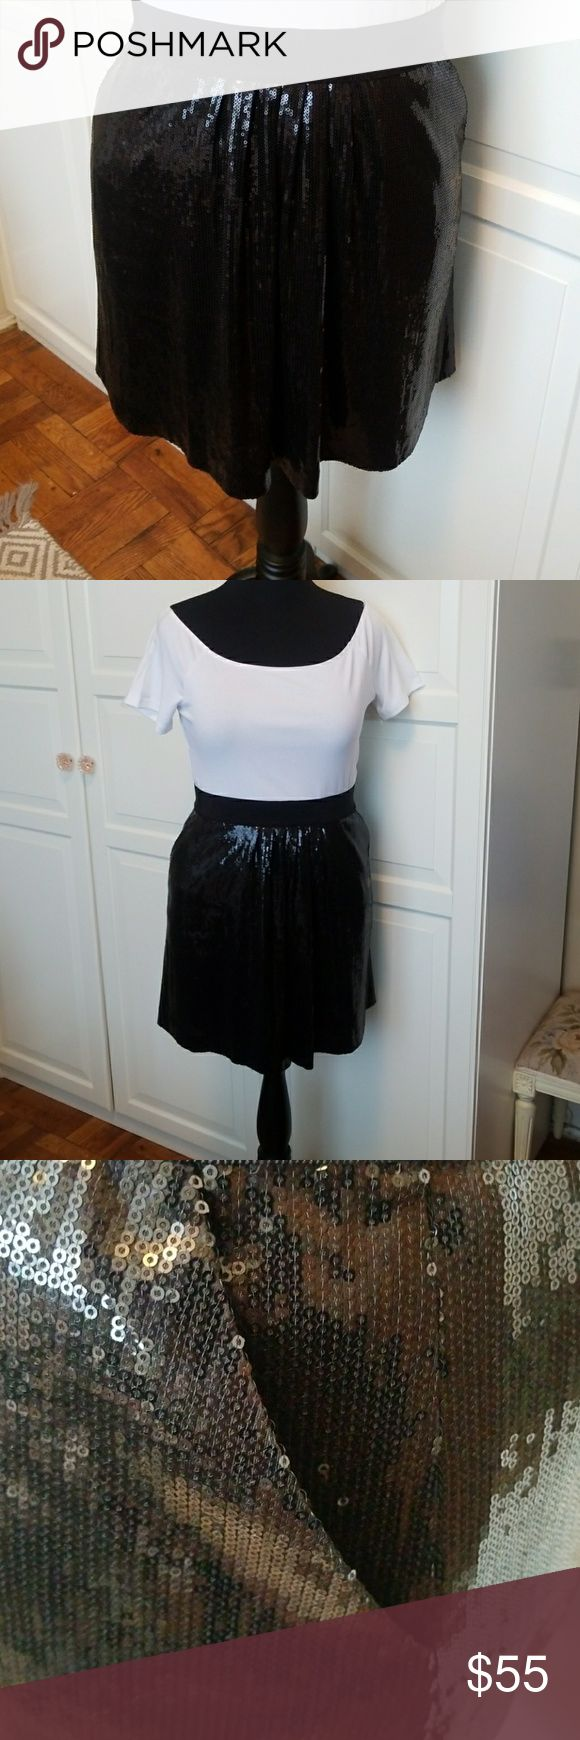 Ann Taylor sequin mini skirt Black sequin mini skirt.  Elastic waist and pockets.  Small sequin with almost liquid look Ann Taylor Skirts Mini